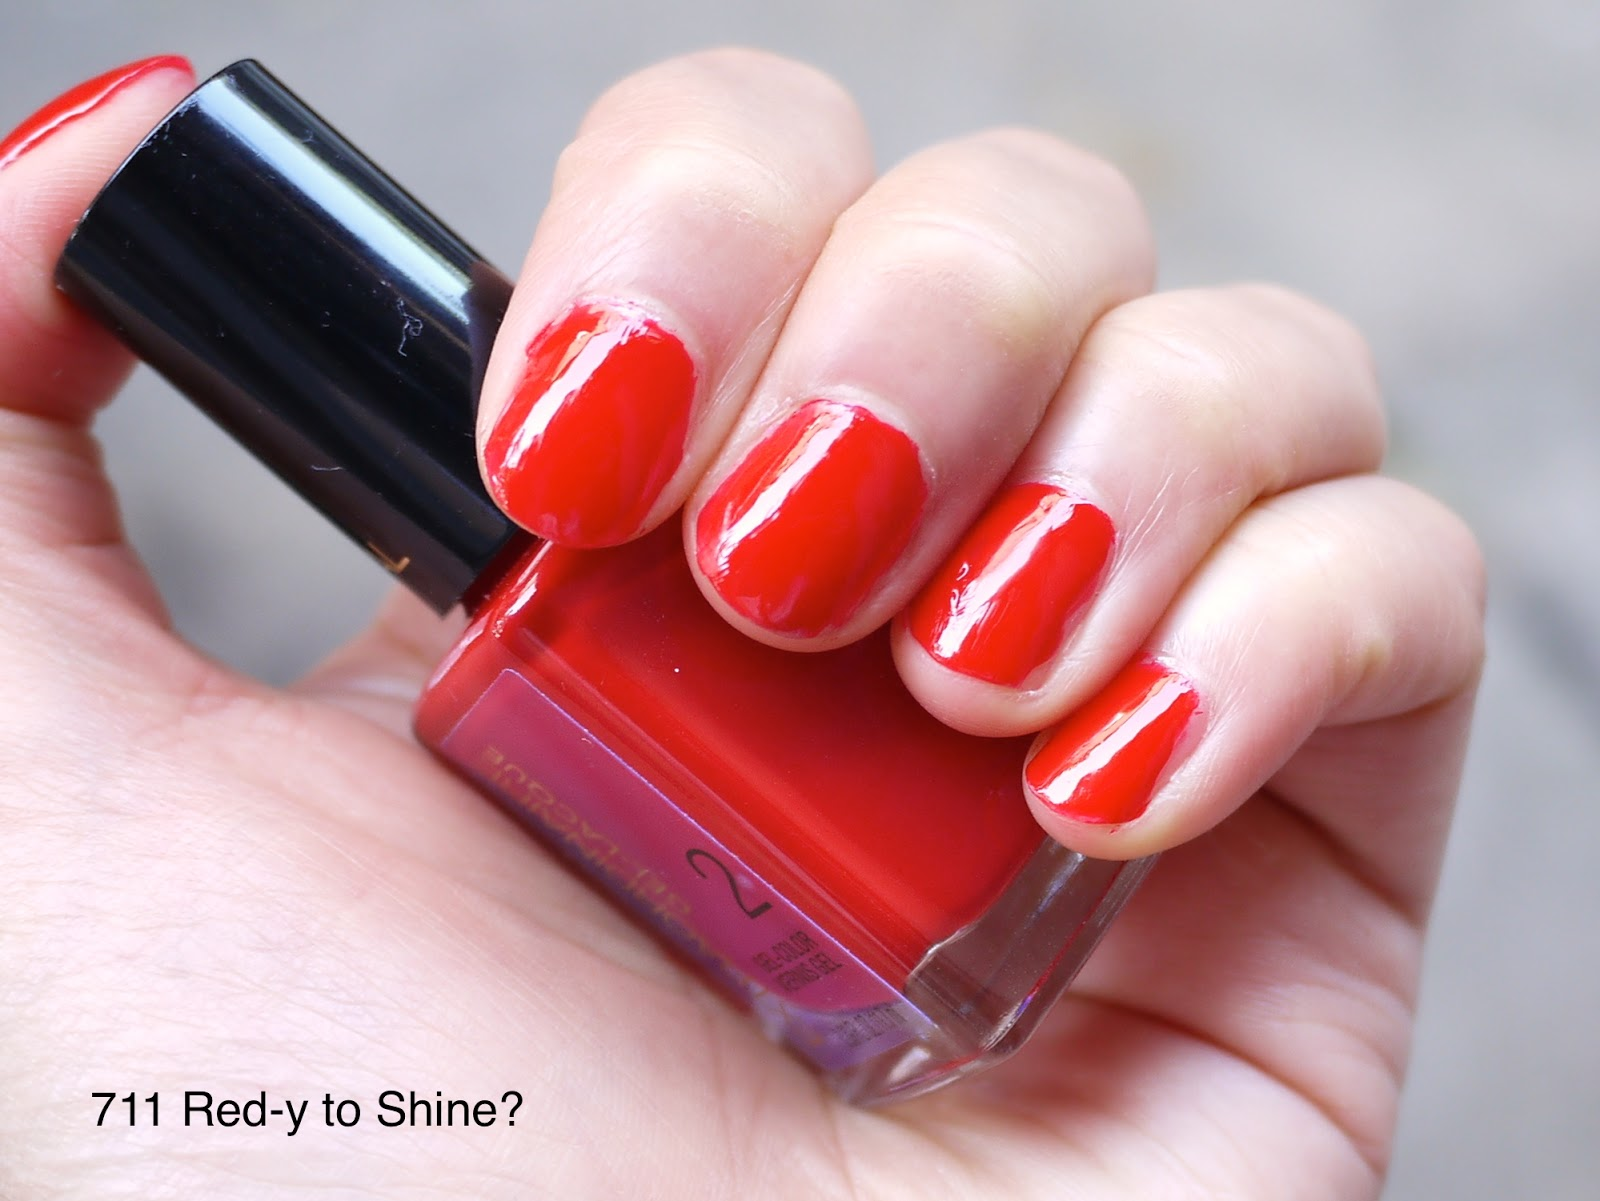 l'oreal extraordinaire gel-lacque 711 red-y to shine? nail swatch